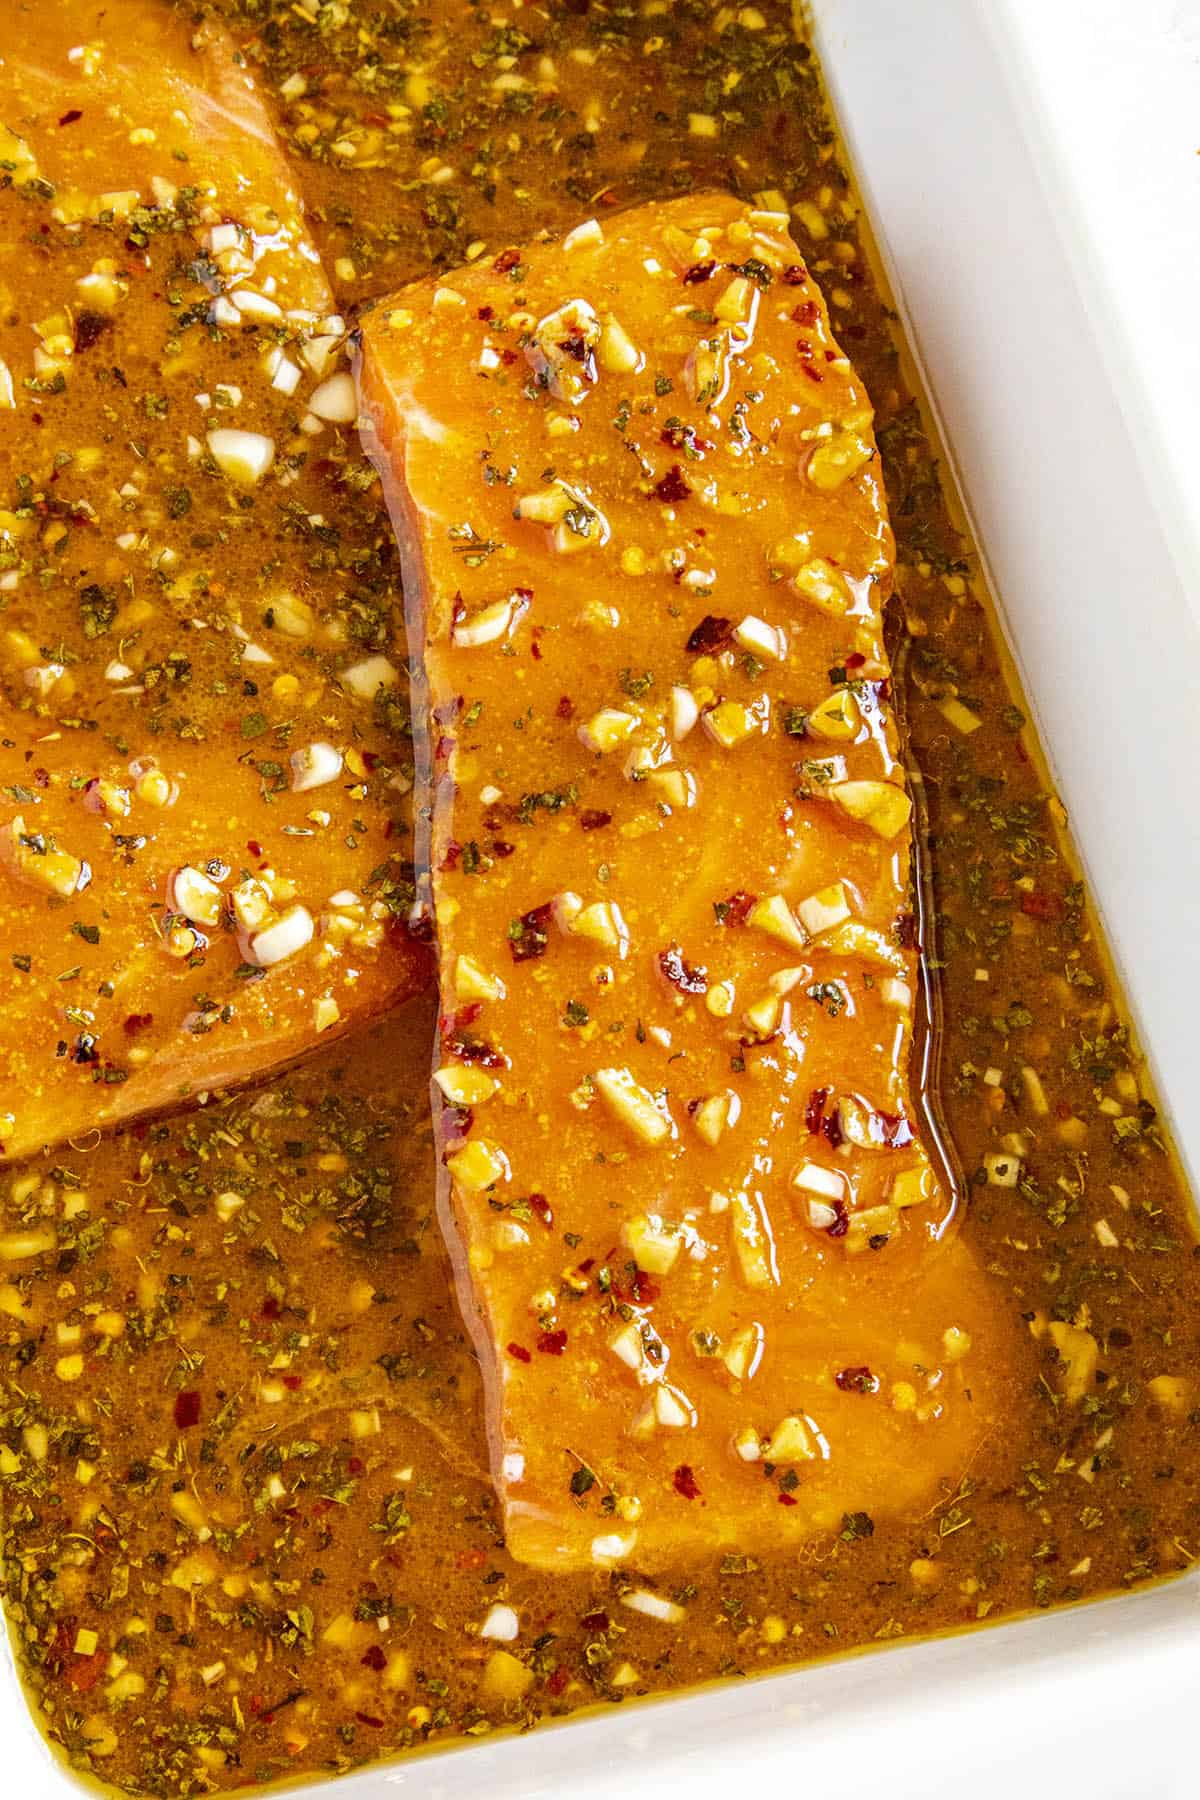 Slices of pink salmon marinating in a bowl of spicy salmon marinade